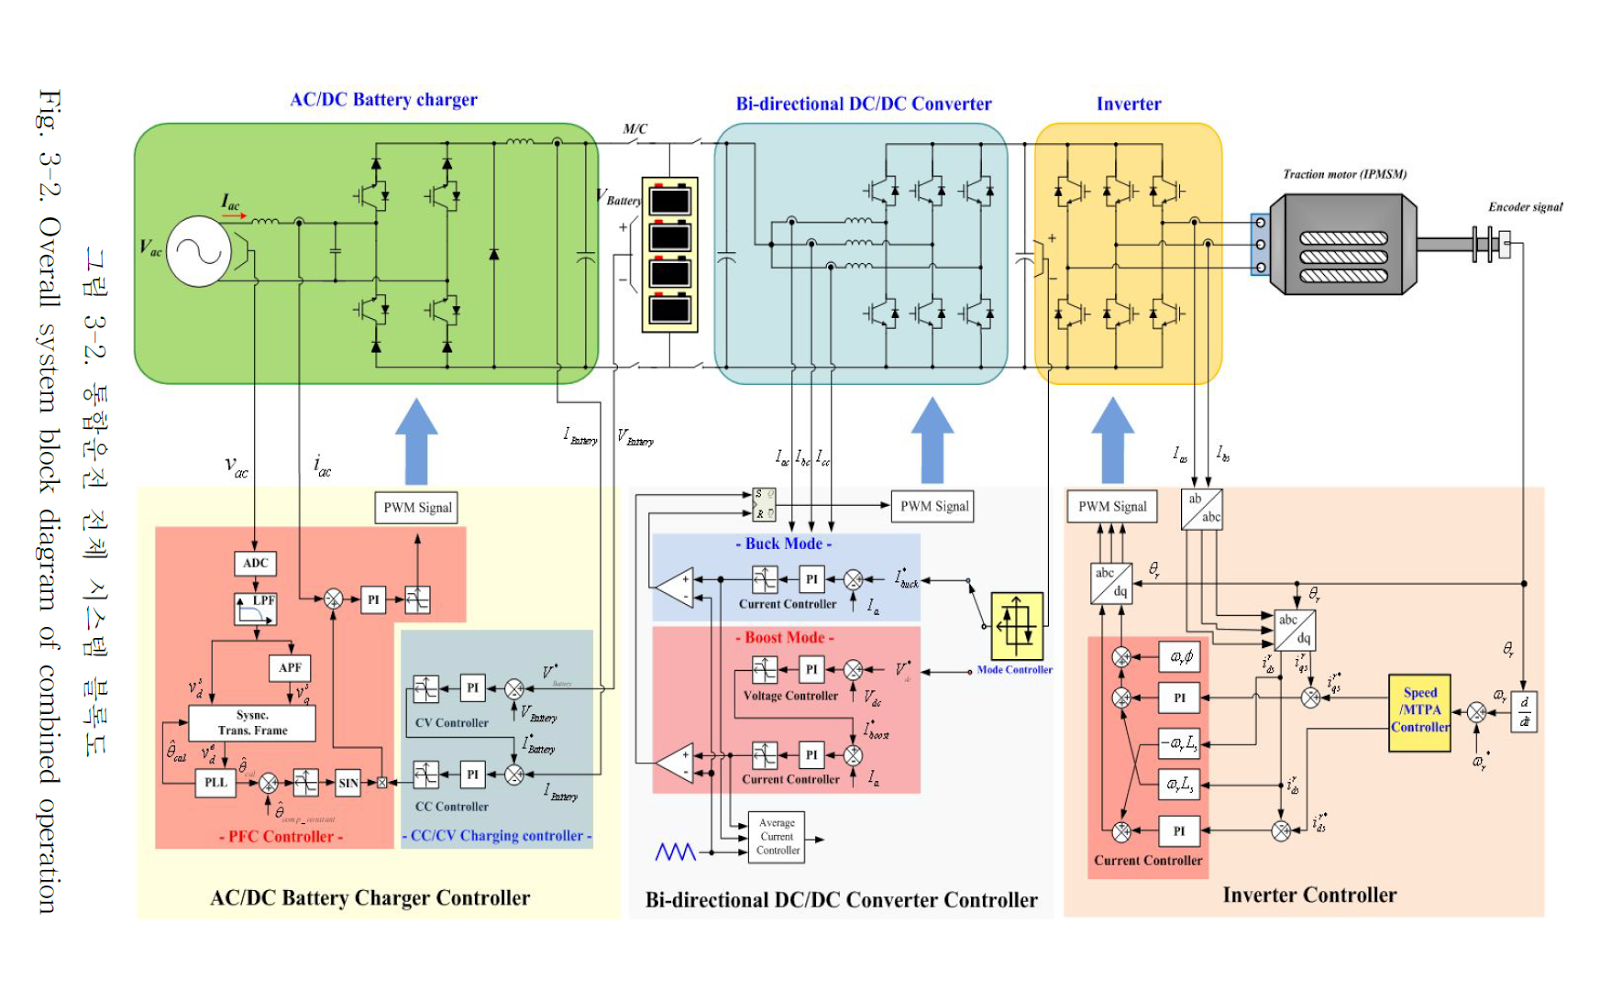 Power Electronics Electrnica De Potencia Leistungselektronik Electric Car Charger Schematic Most Developed Countries That Produce Vehicles And Automobile Companies Invest In Lots Of Budgets For Developing Vehicle To Reduce The